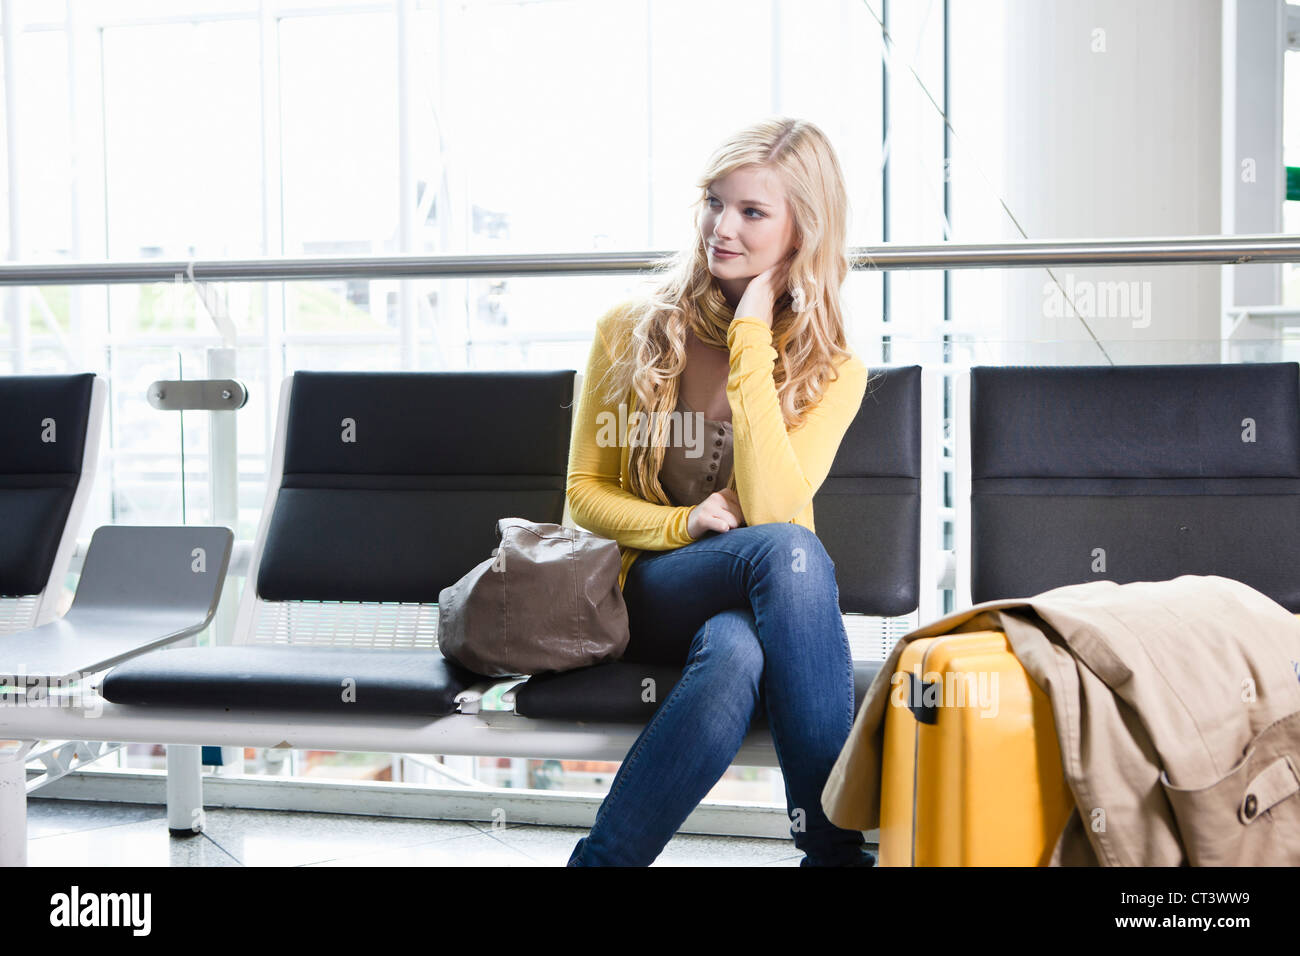 Woman sitting in airport waiting area - Stock Image